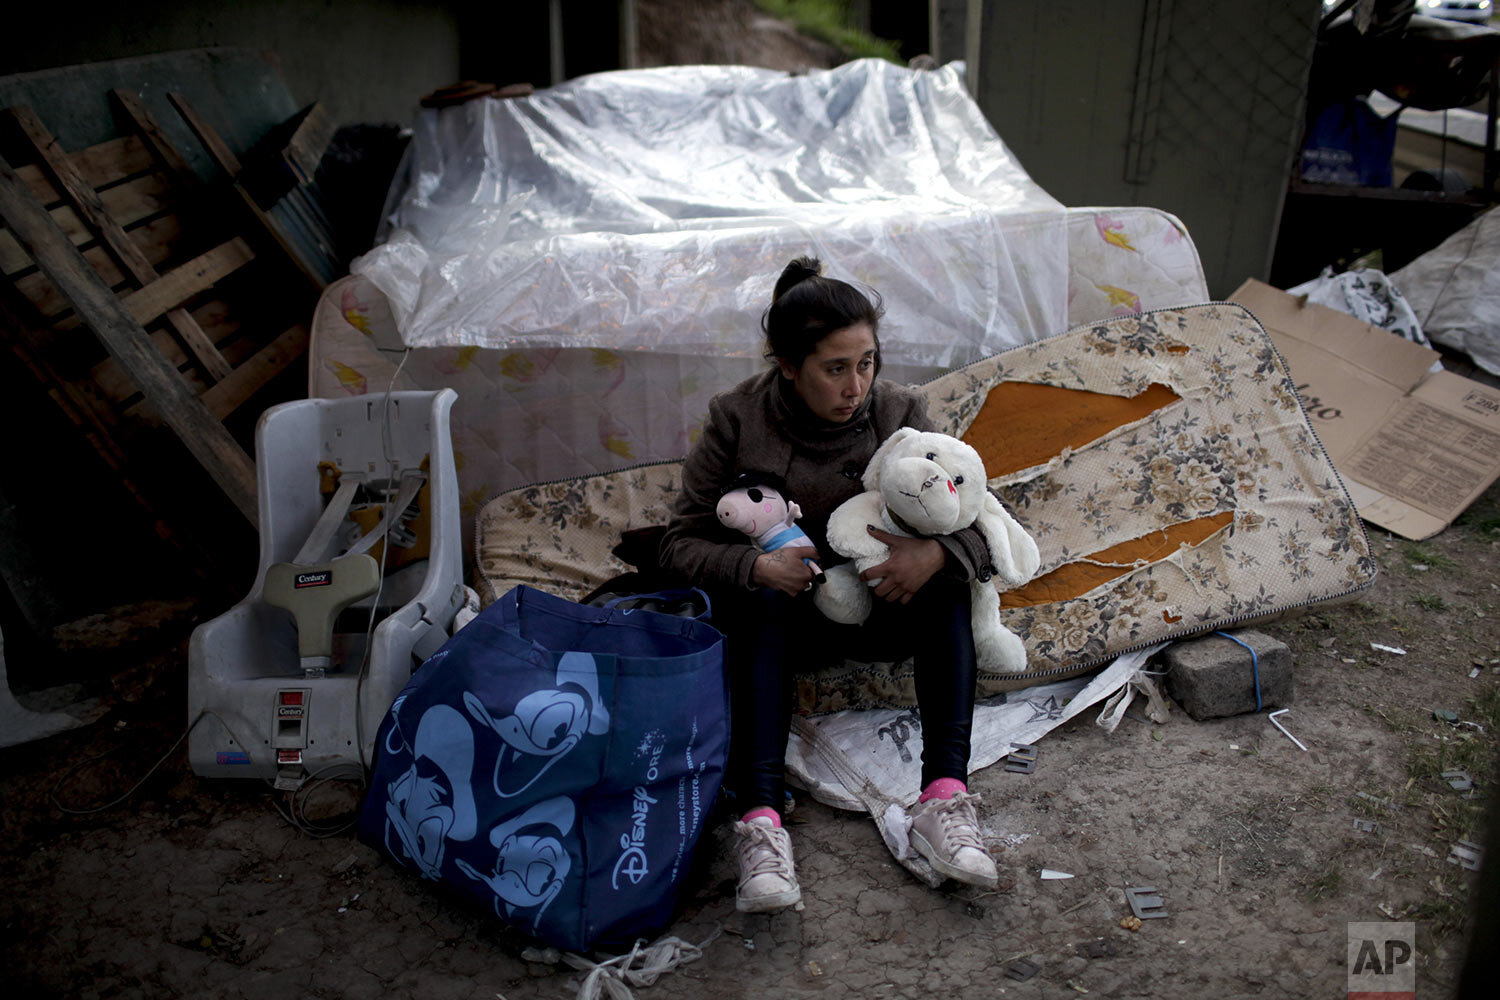 """In this Sept. 19, 2019 photo, Macarena Contreras holds stuffed animals she plucked from the garbage for her three children as she poses for a photo where she lives homeless under a bridge in Buenos Aires, Argentina. Contreras, 31, lost her job as a nanny two years ago, and her children, ages 3 to 8, live with her mother. The single mother said she hasn't been able to find a job as a nanny because people are cutting back their expenses, and that she started sleeping under a bridge after she and her partner broke up. """"We're in a war where Argentines are fighting against Argentines,"""" she says, feeling there is a lack of solidarity with people like her and paranoia that the poor are thieves. """"The street is not a life for anyone."""" (AP Photo/Natacha Pisarenko)"""